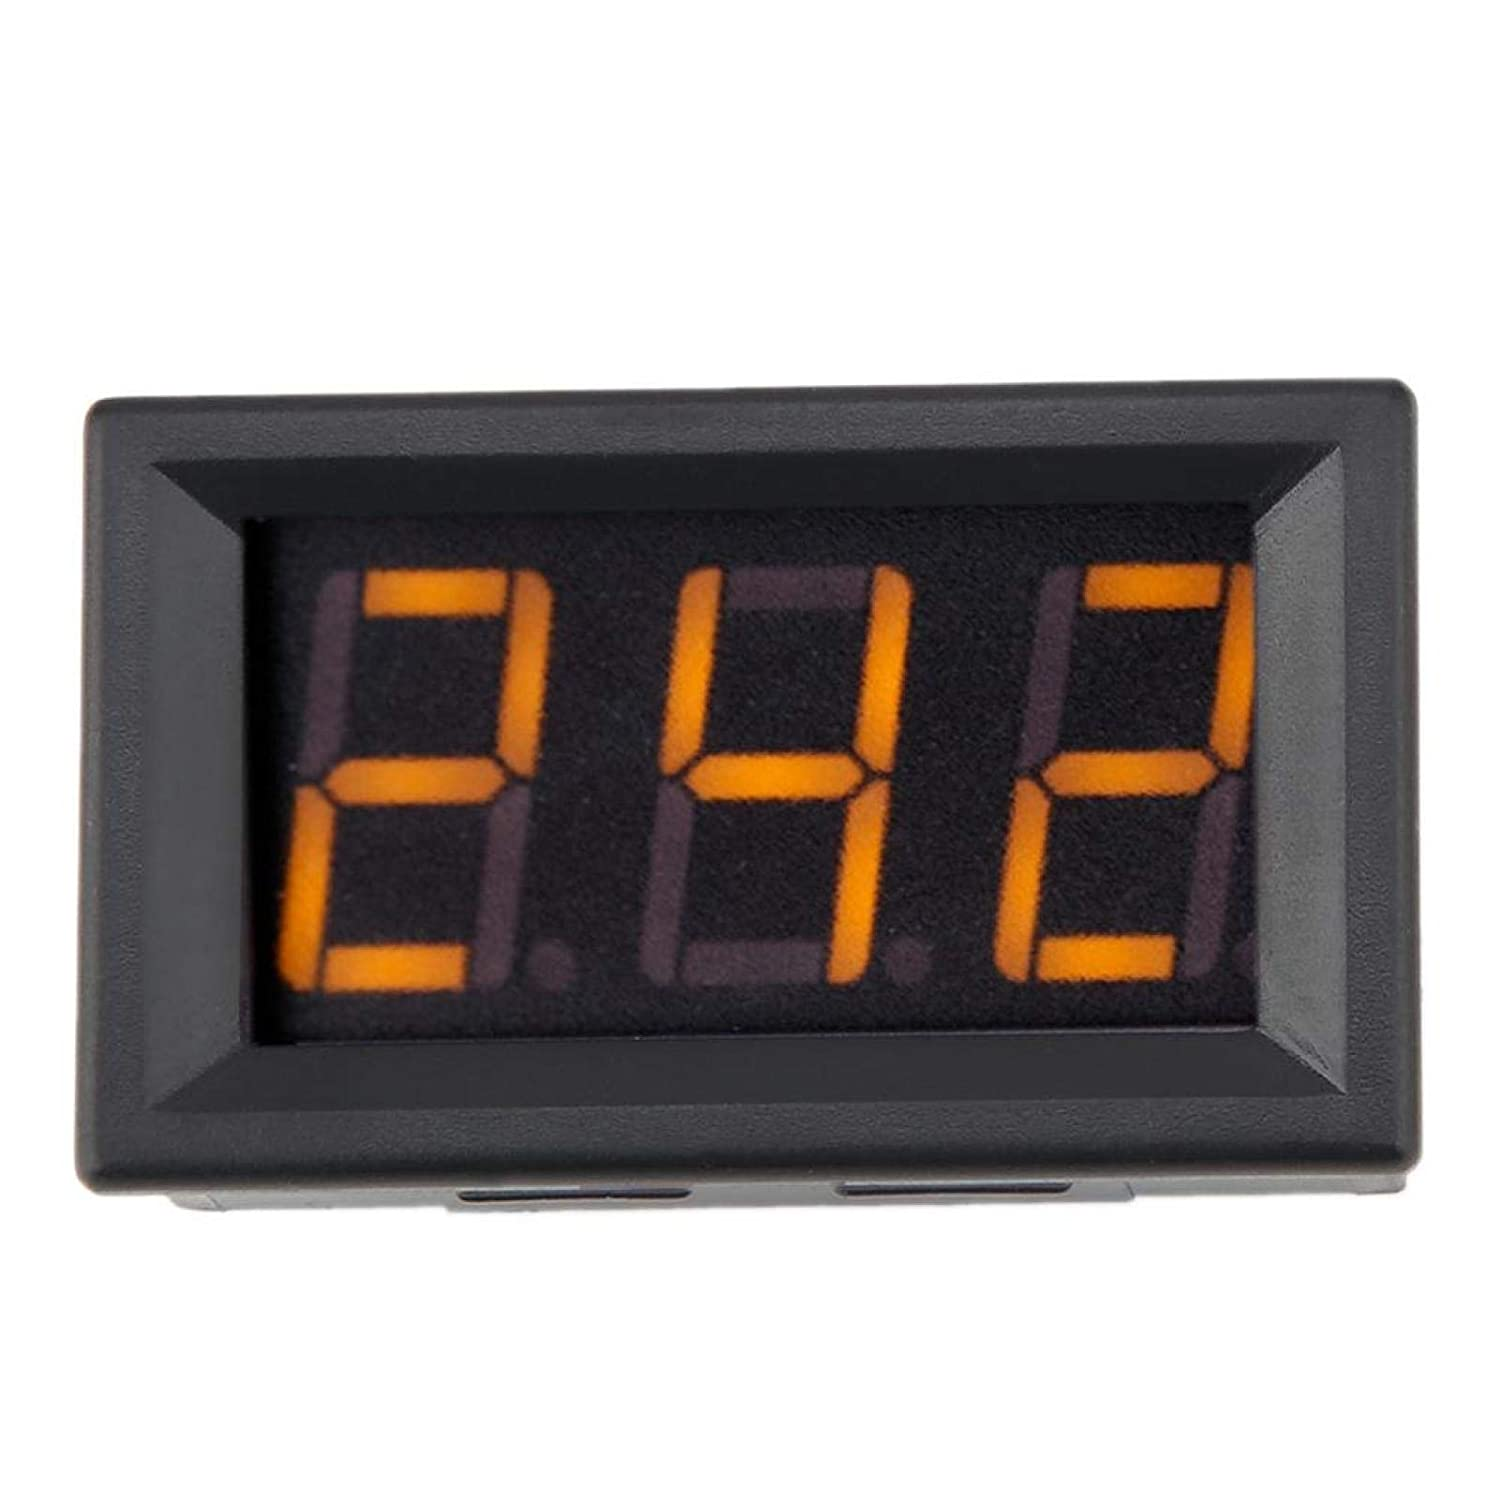 LED Display Voltmeter Limited Special Price Two Wire High Sensitivity Meter Displ Cheap